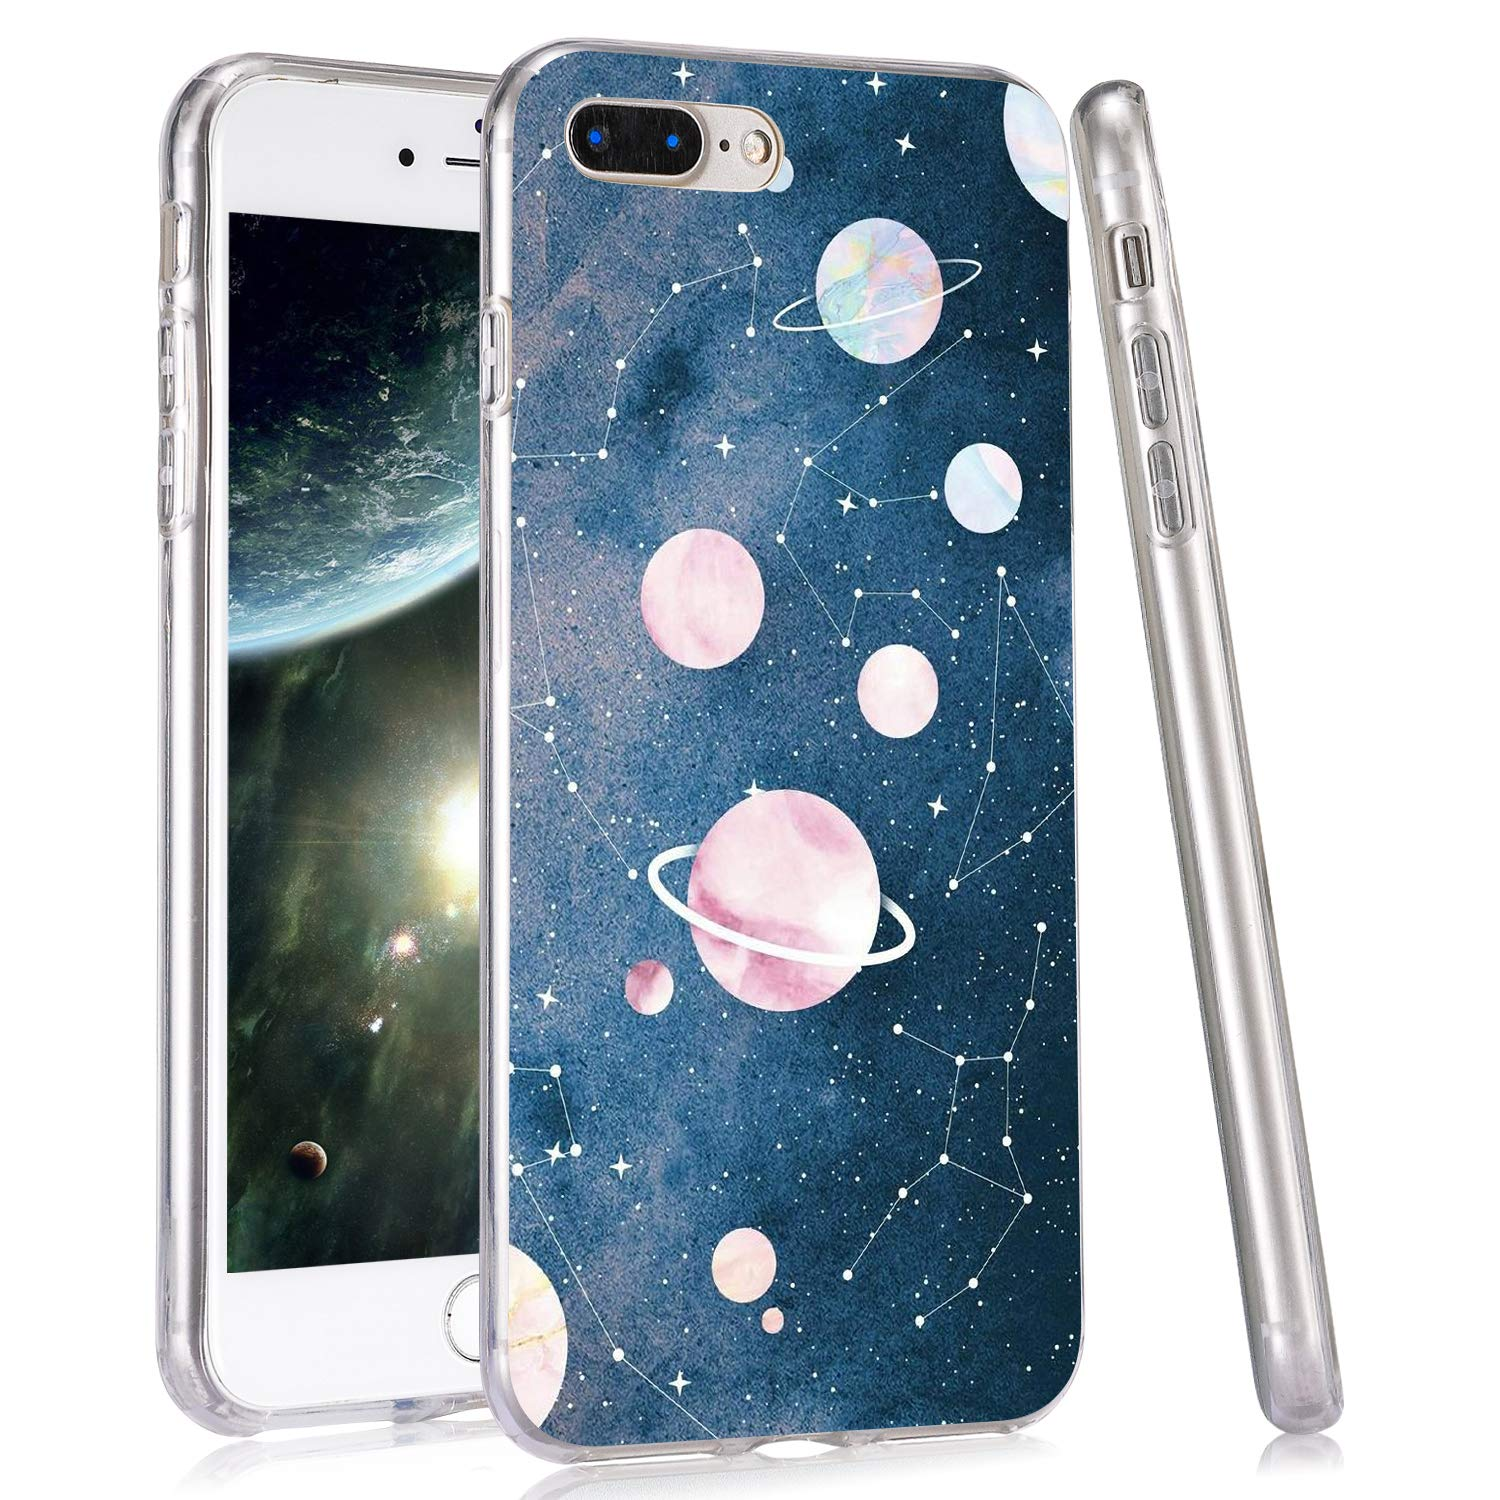 LuGeKe Cool Star Constellation Print Phone Case for iPhone Xs max Silicone Cases Planet Space Pattern Cover Shock Absorption Flexible Skin Frame